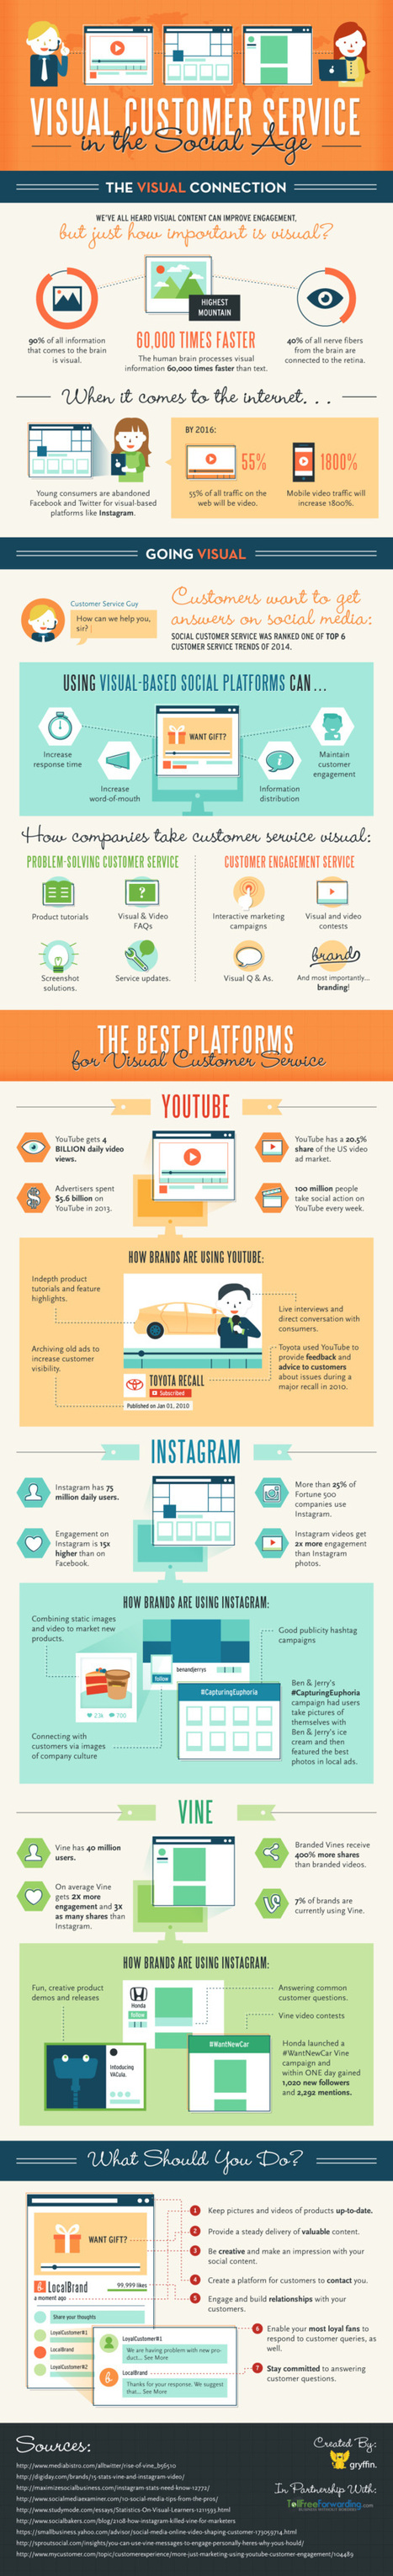 Why Visual Content Matters in the Social Age [INFOGRAPHIC] | Integrated Brand Communications | Scoop.it